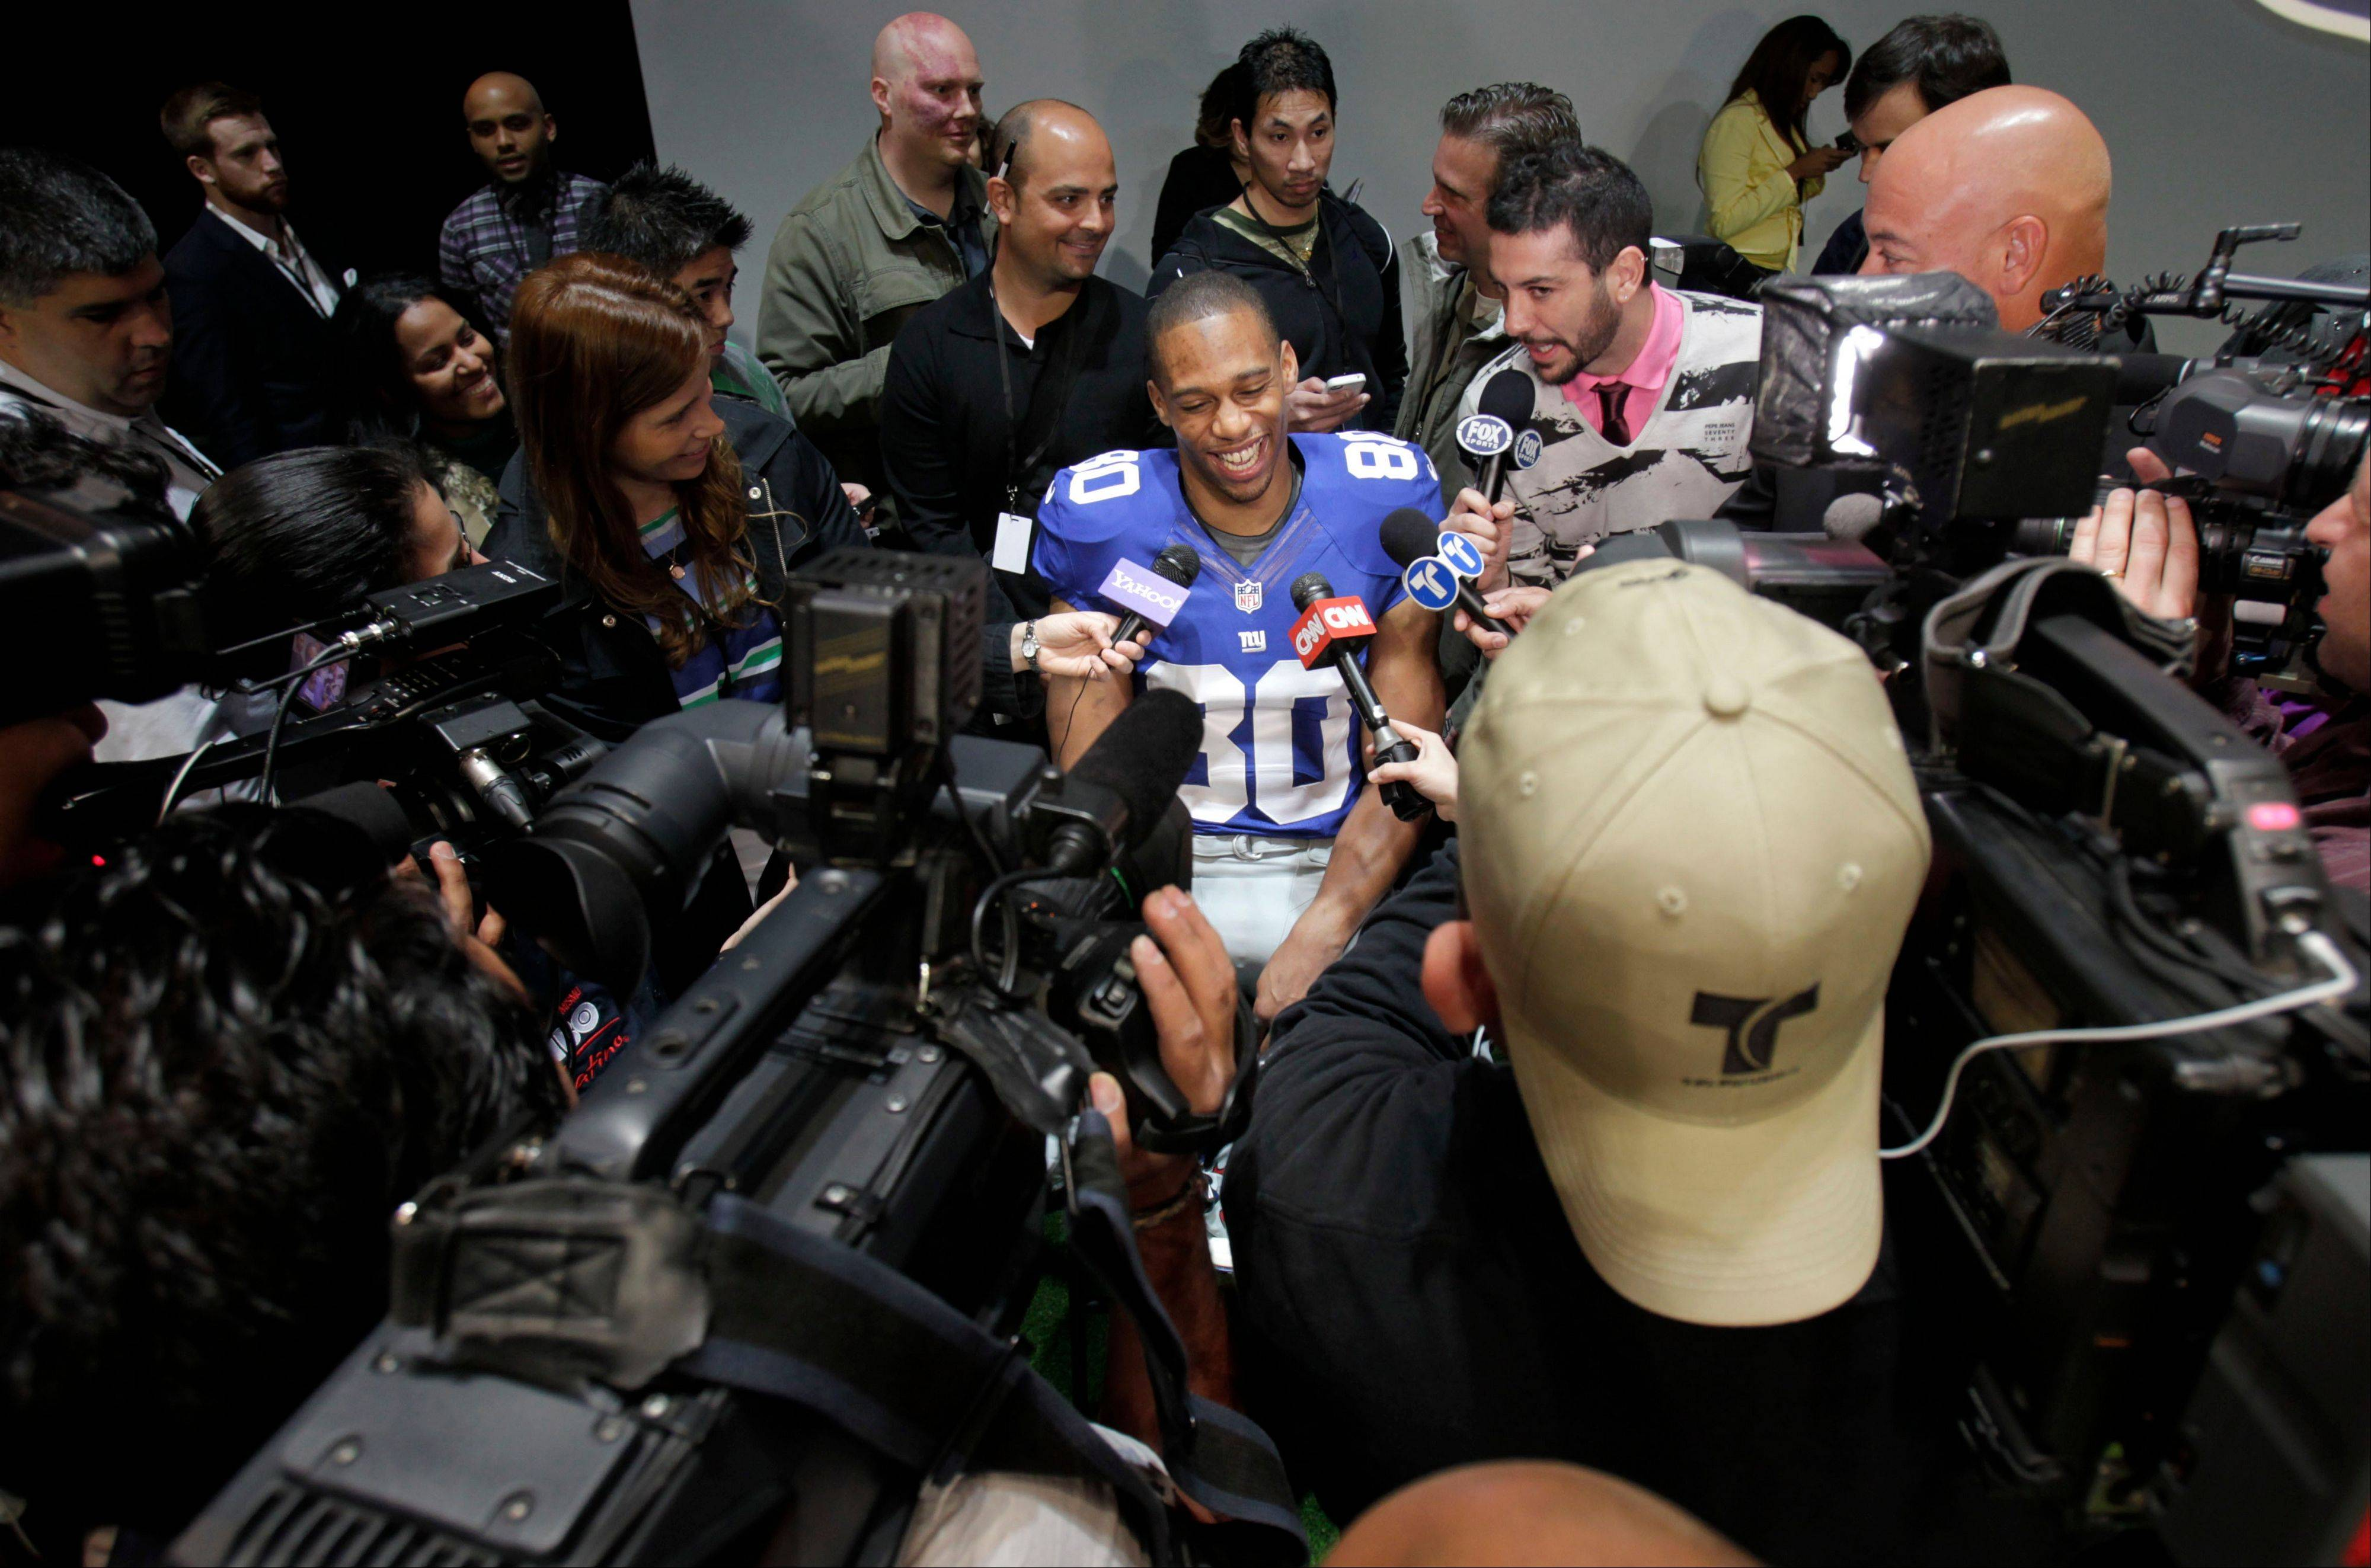 New York Giants' Victor Cruz smiles while surrounded by reporters during a presentation in New York, Tuesday, April 3, 2012. The NFL and Nike showed off the new gear in grand style with a gridiron-themed fashion show at a Brooklyn film studio.